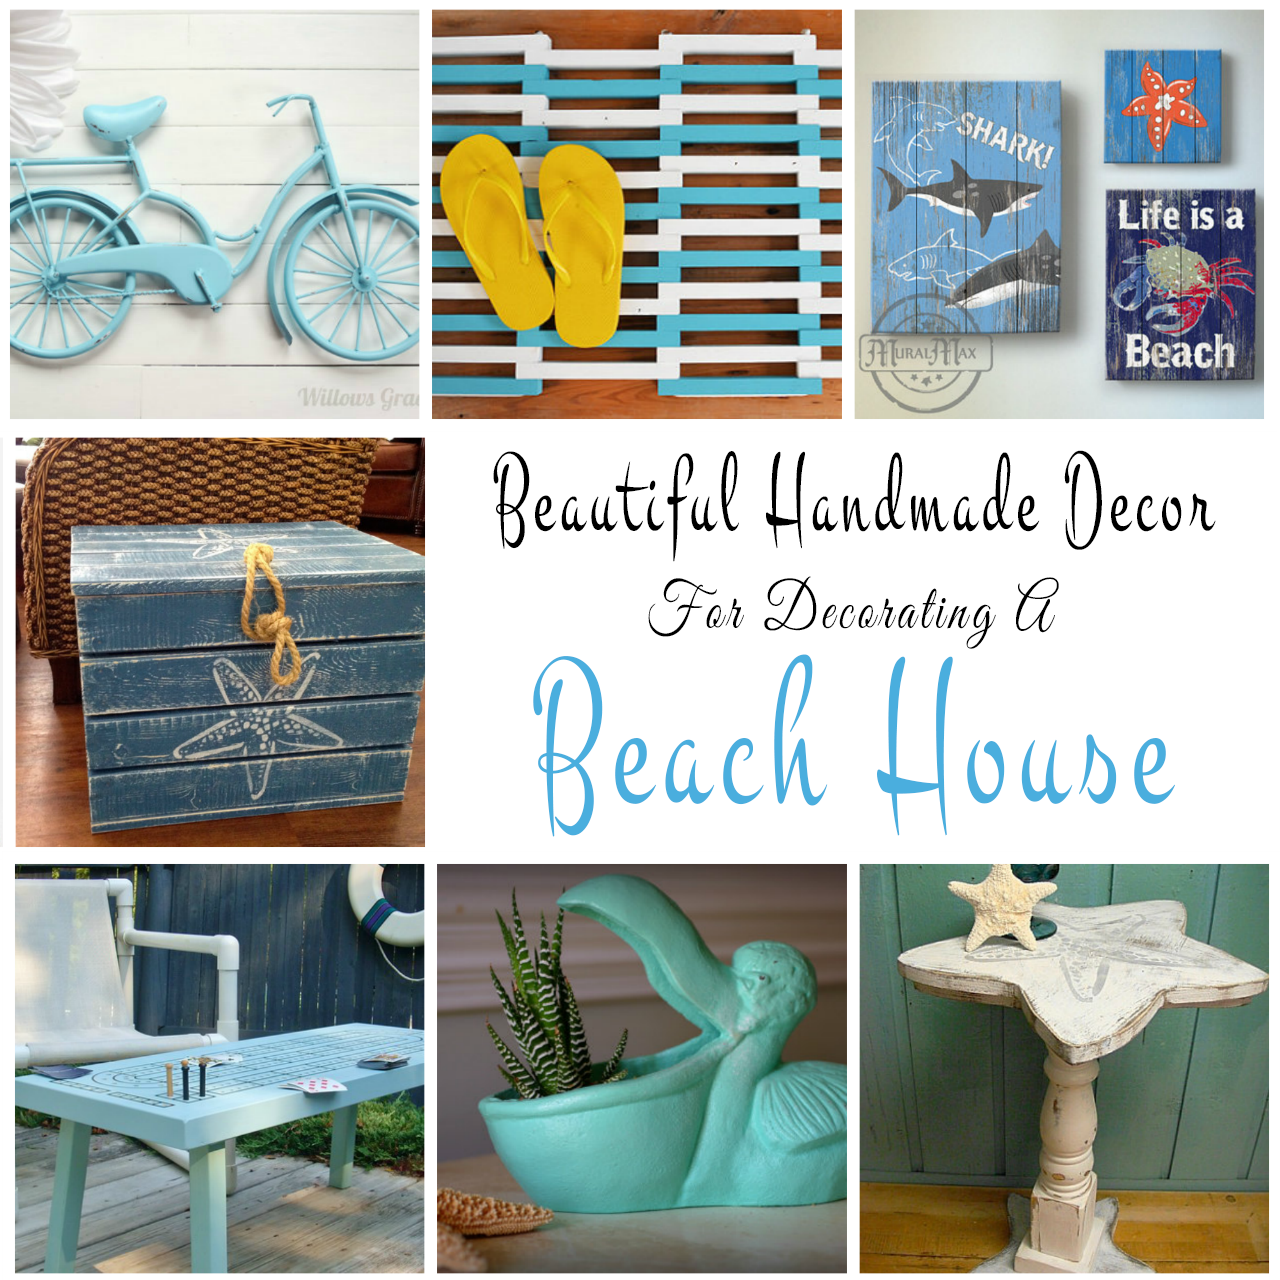 Handmade decor ideas for decorating a beach house for Decorating a house